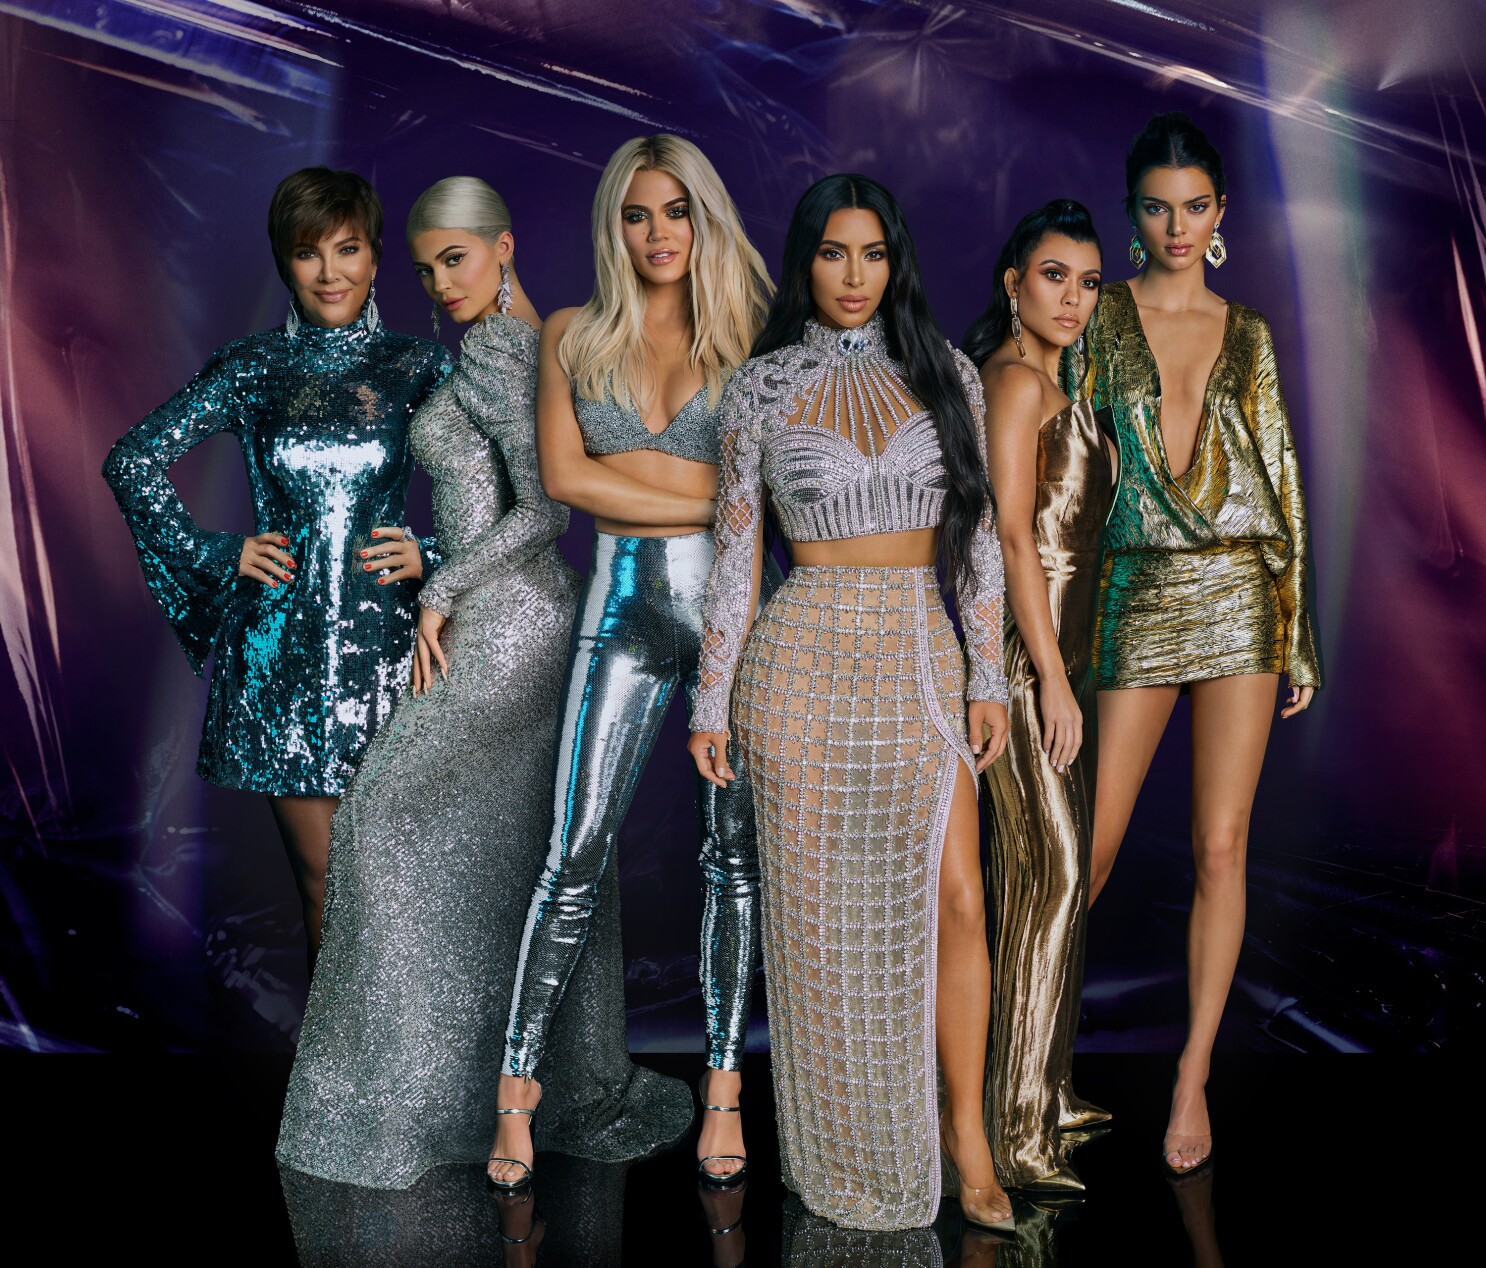 Keeping Up With the Kardashians' will end its reign in 2021 - Los Angeles Times